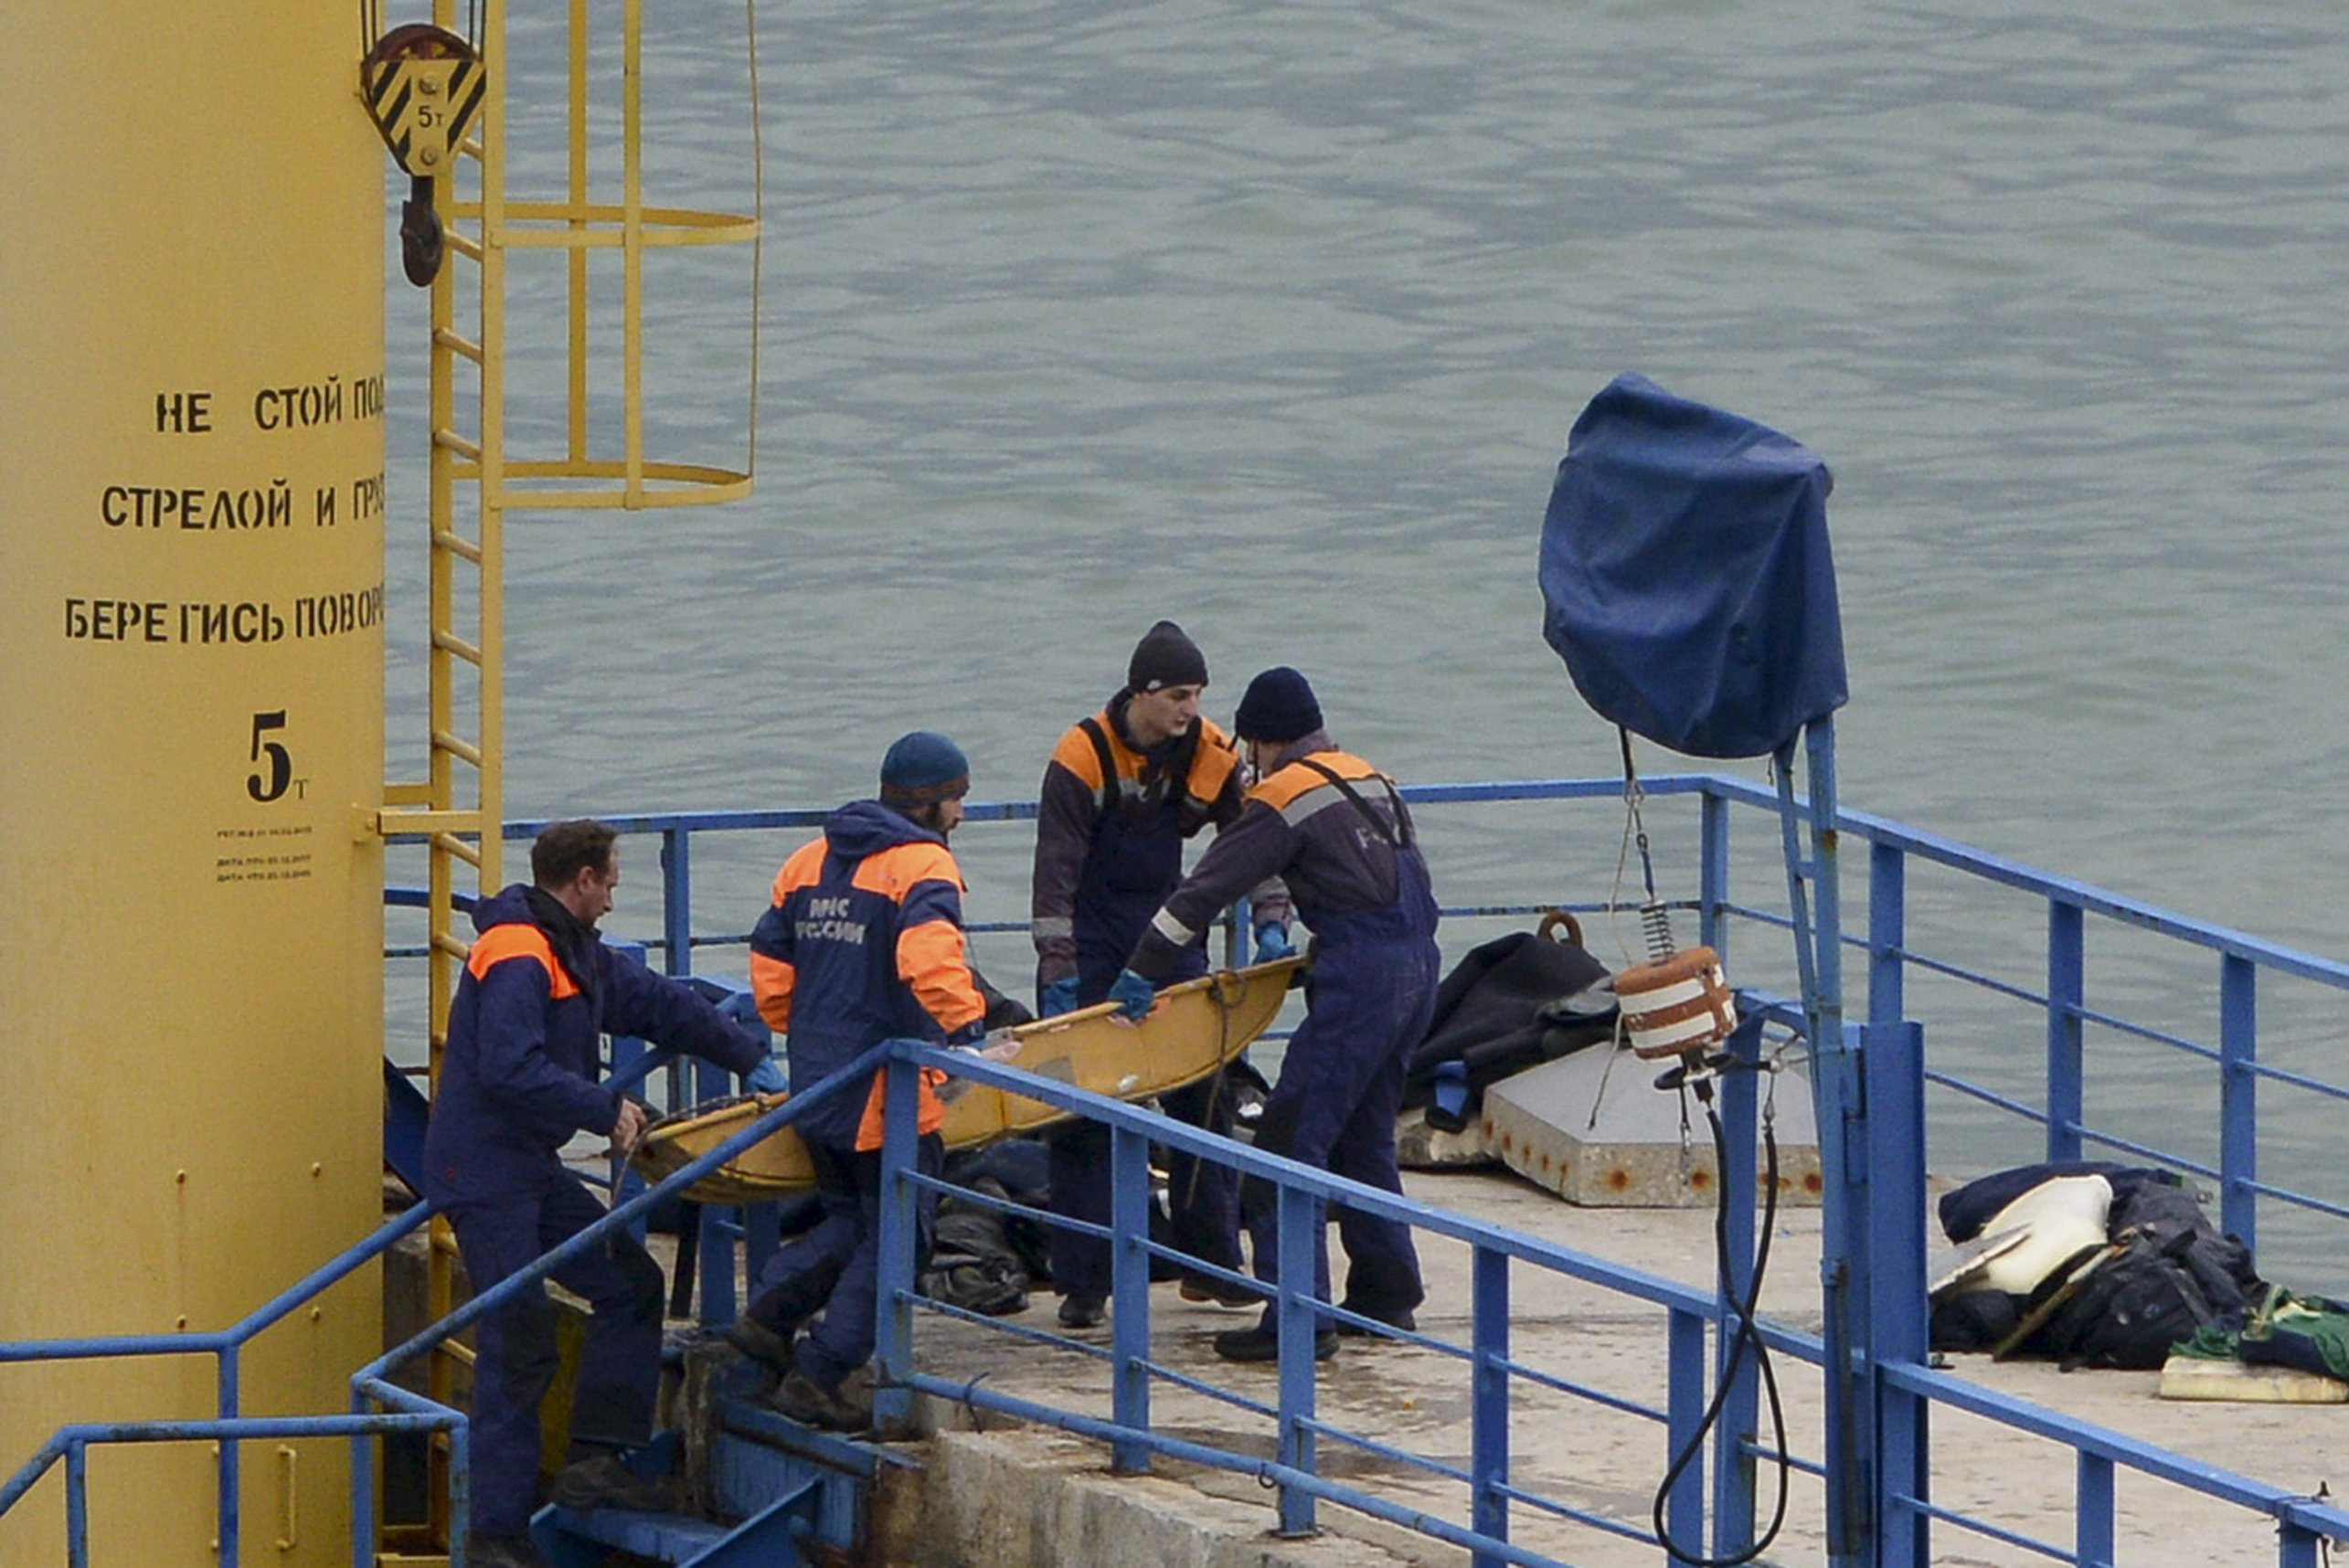 Russia examines all possible reasons for Black Sea jet crash